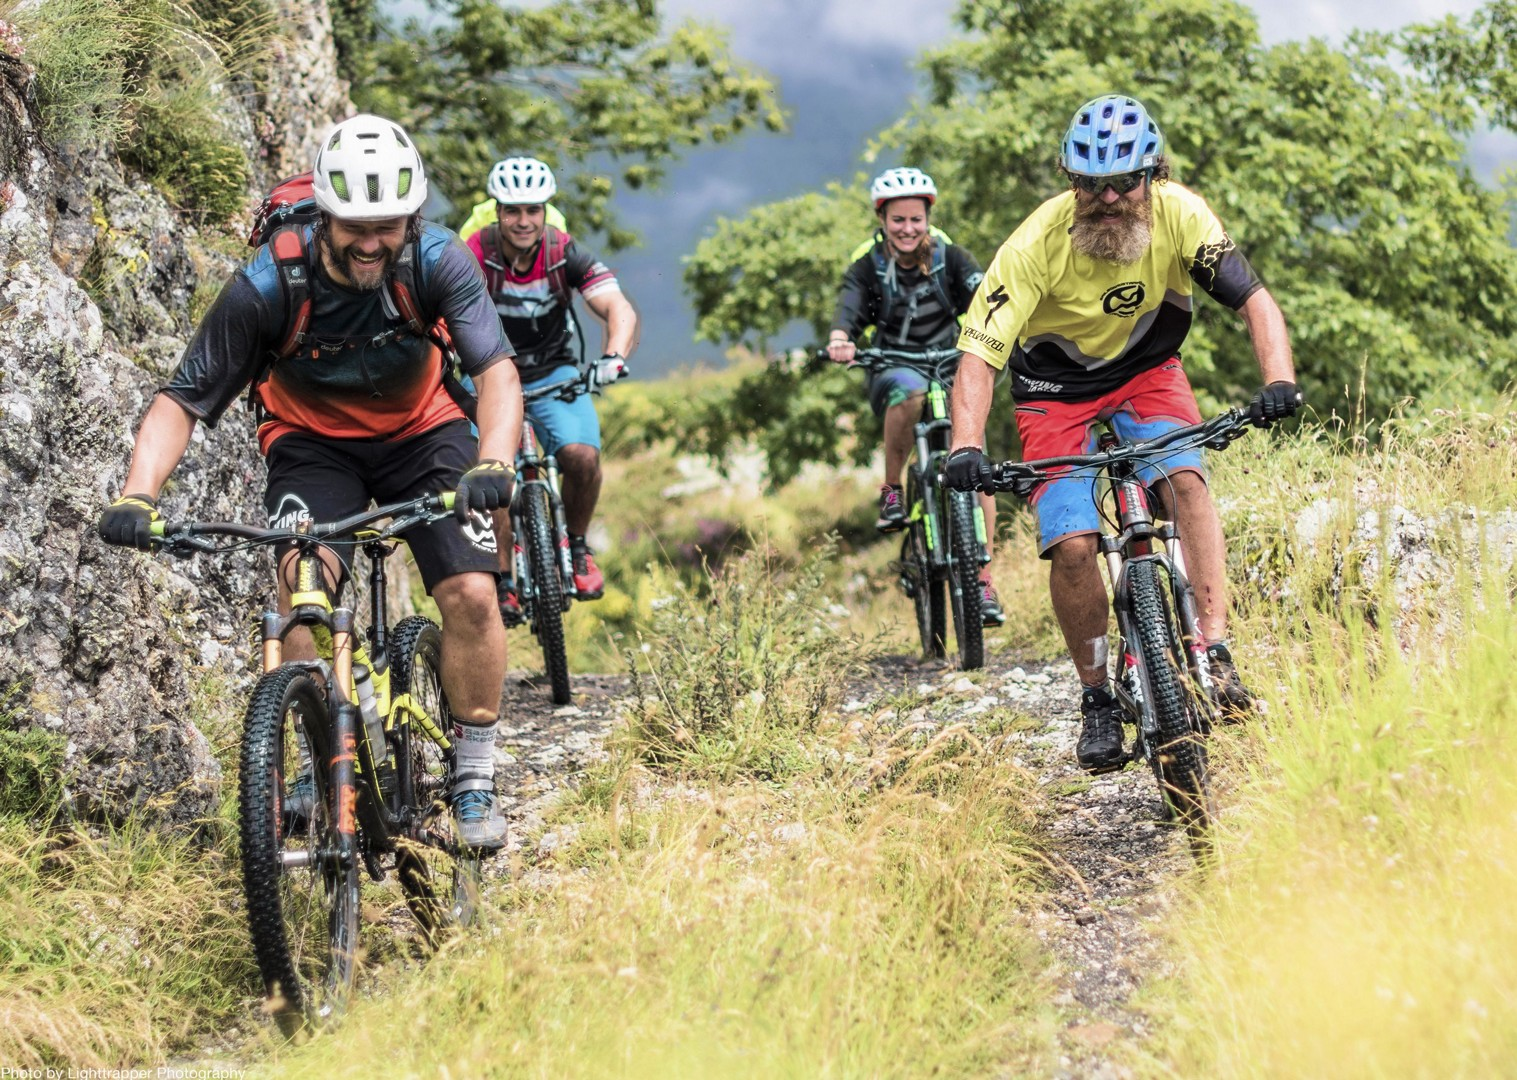 group-guided-mountain-biking-northern-spain-cares-gorge.jpg - Spain - Picos de Europa - Trans Picos - Guided Mountain Bike Holiday - Mountain Biking